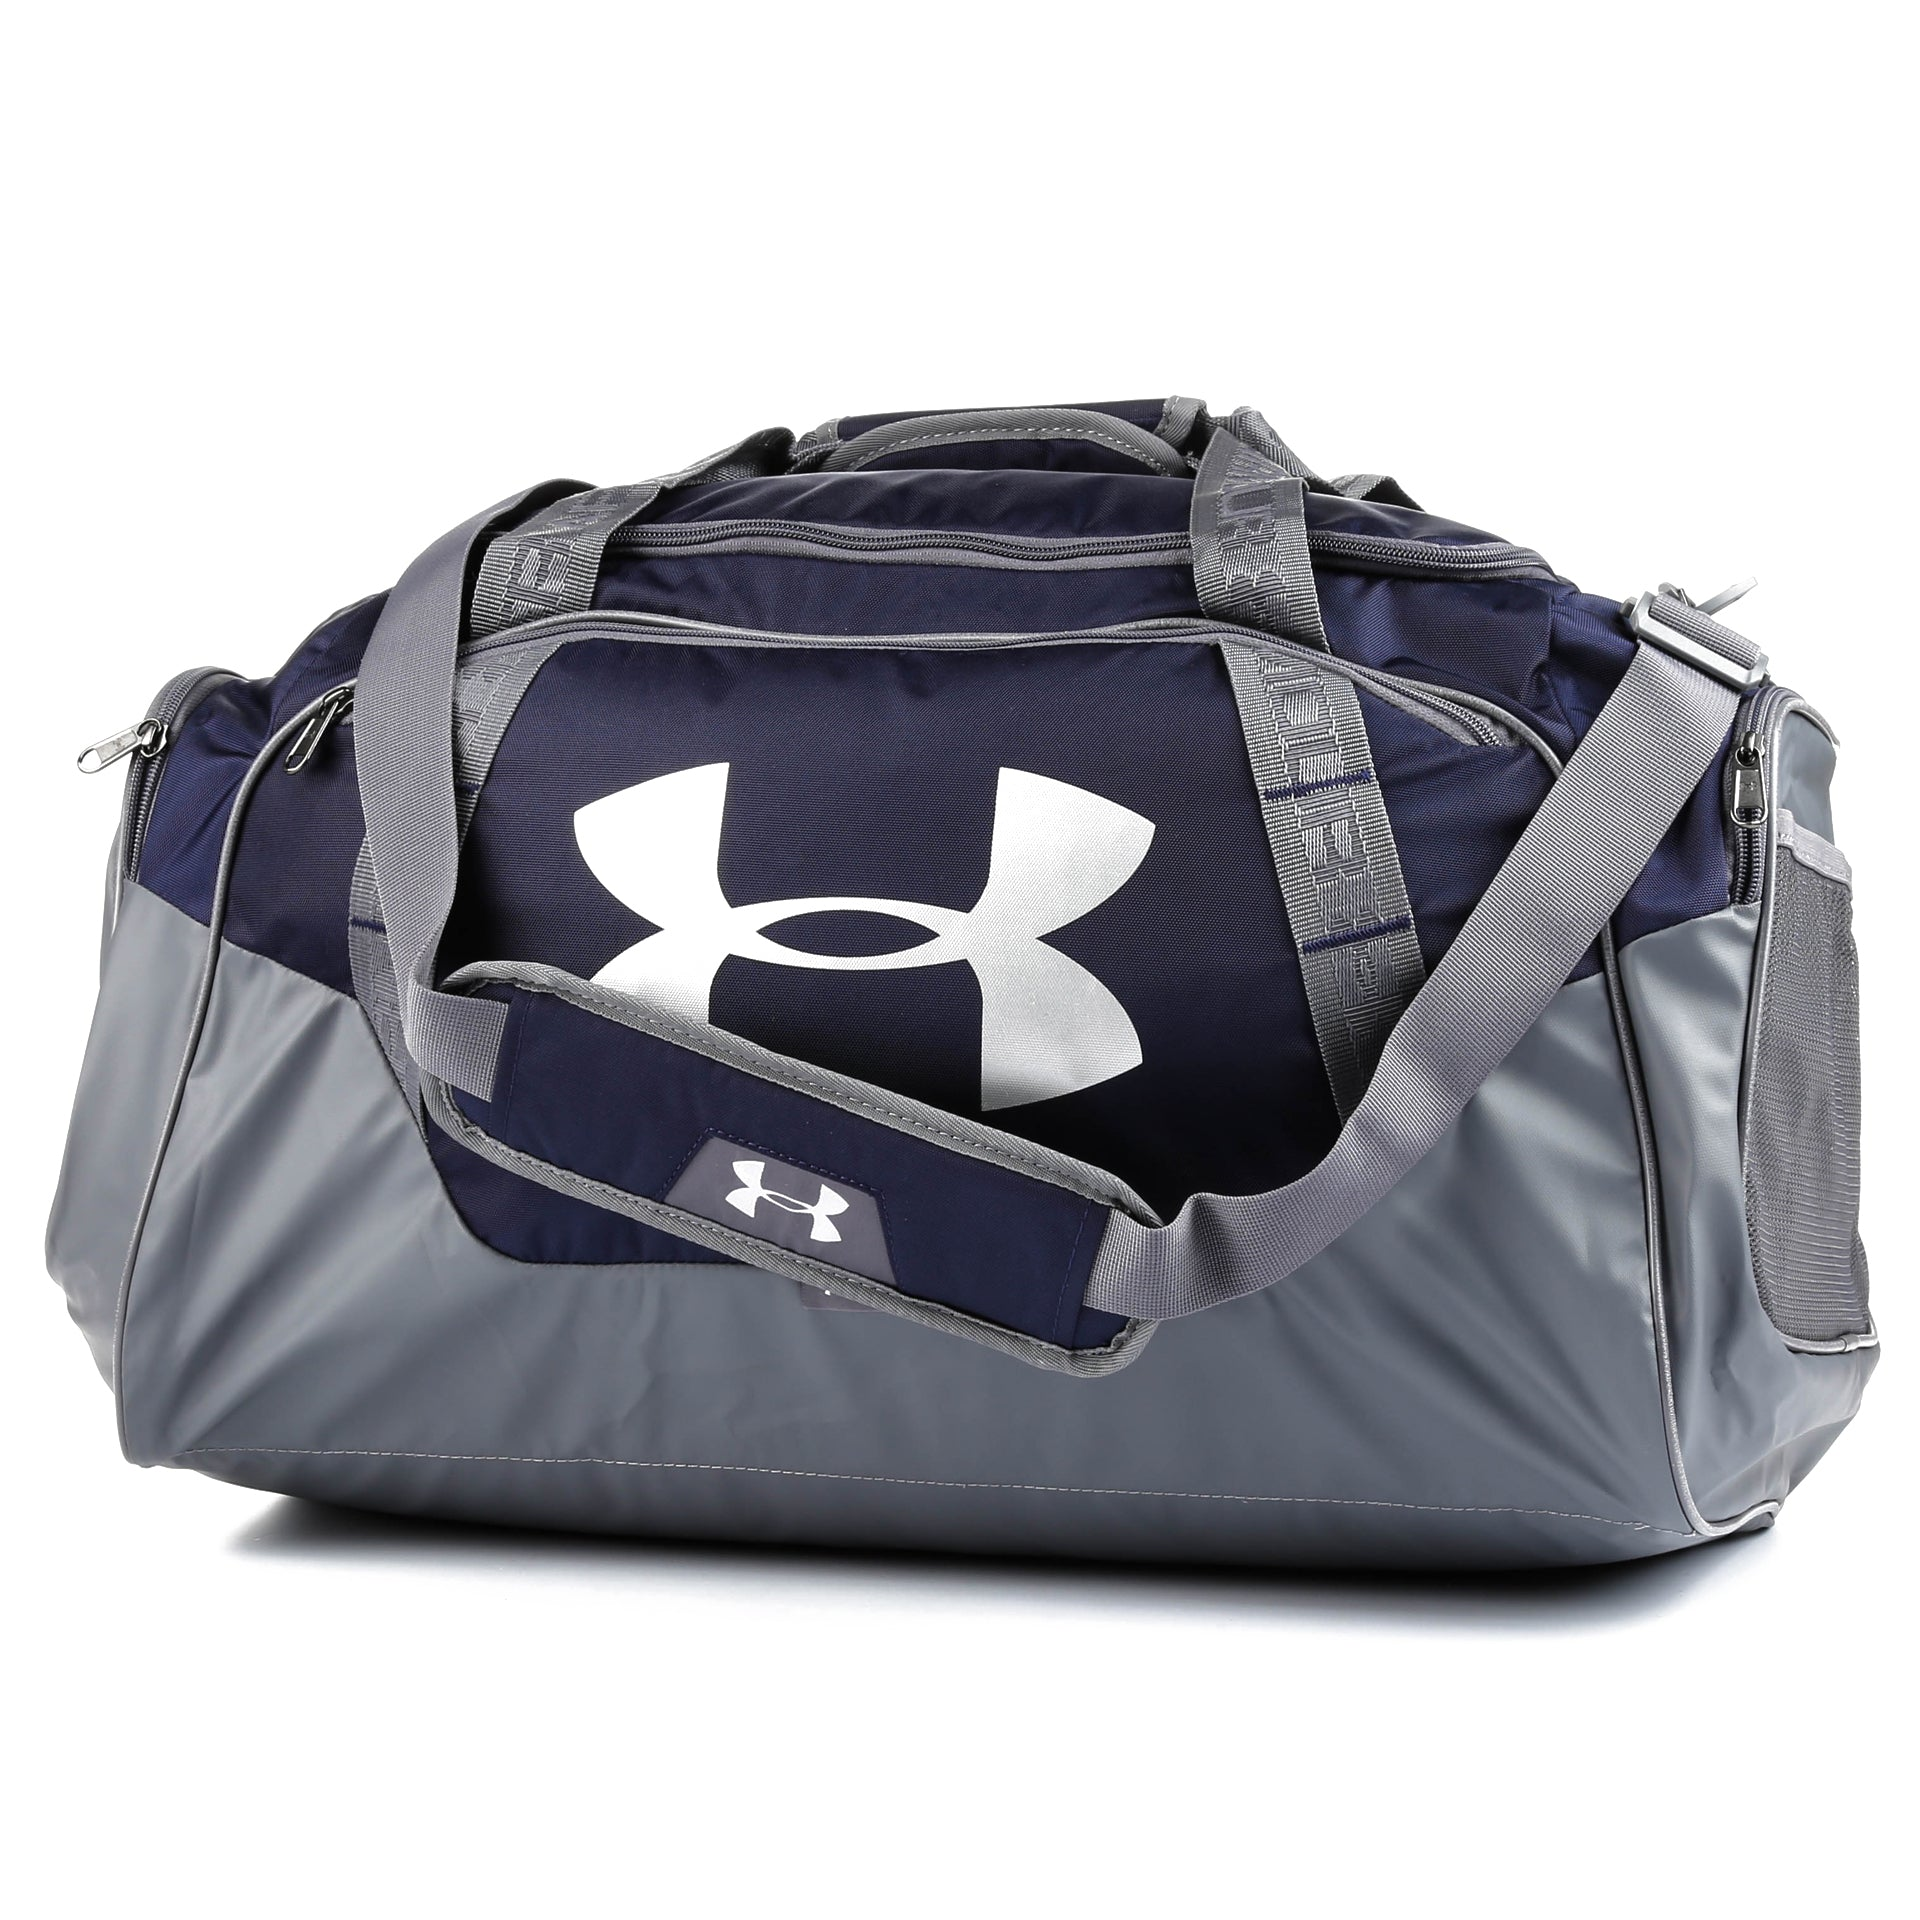 9ea5c00973da Under Armour Undeniable 3.0 Medium Duffle bag - Midnight Navy   Graphite